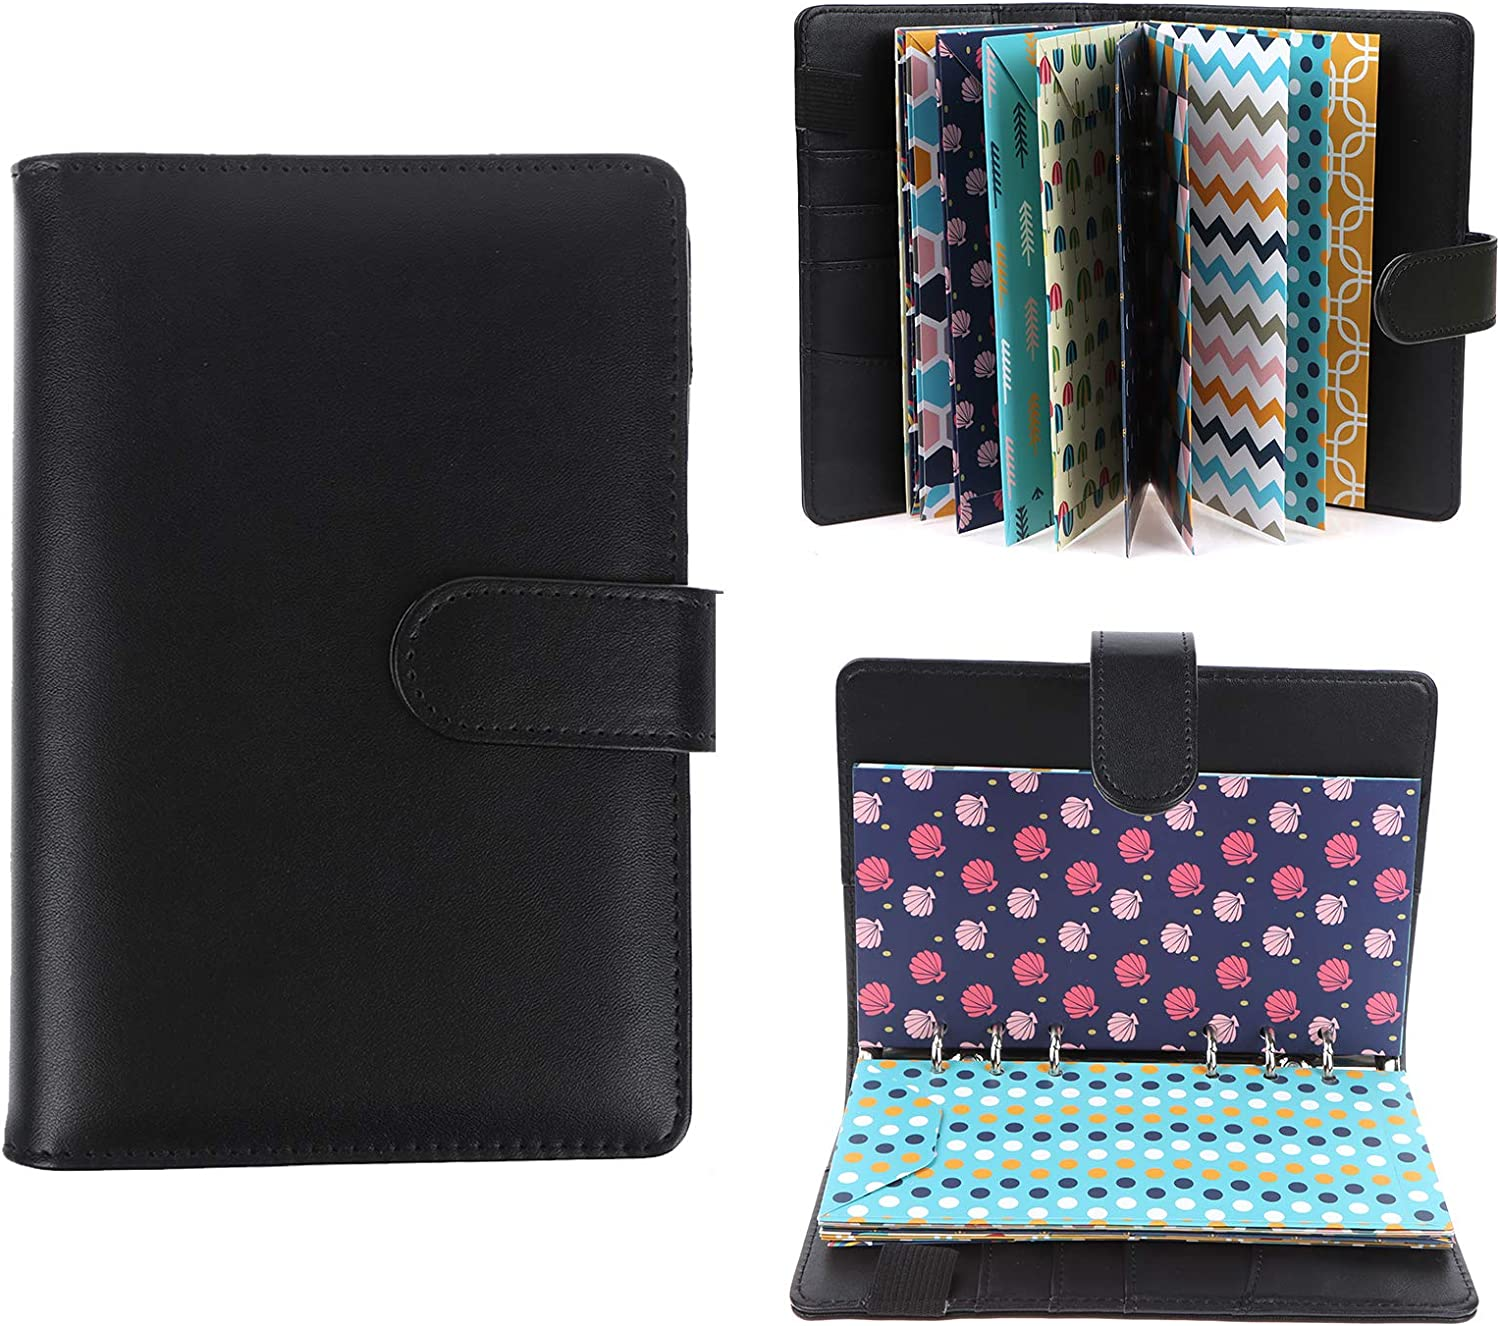 Xgood 28 Pieces PU Leather Budget Planner Organizer Binder Cash Envelope System for Budgeting Envelopes 12 Patterns Budget Money Envelopes, 12 Expense Budget Sheets with 24 Labels for Bill Planner: Home & Kitchen